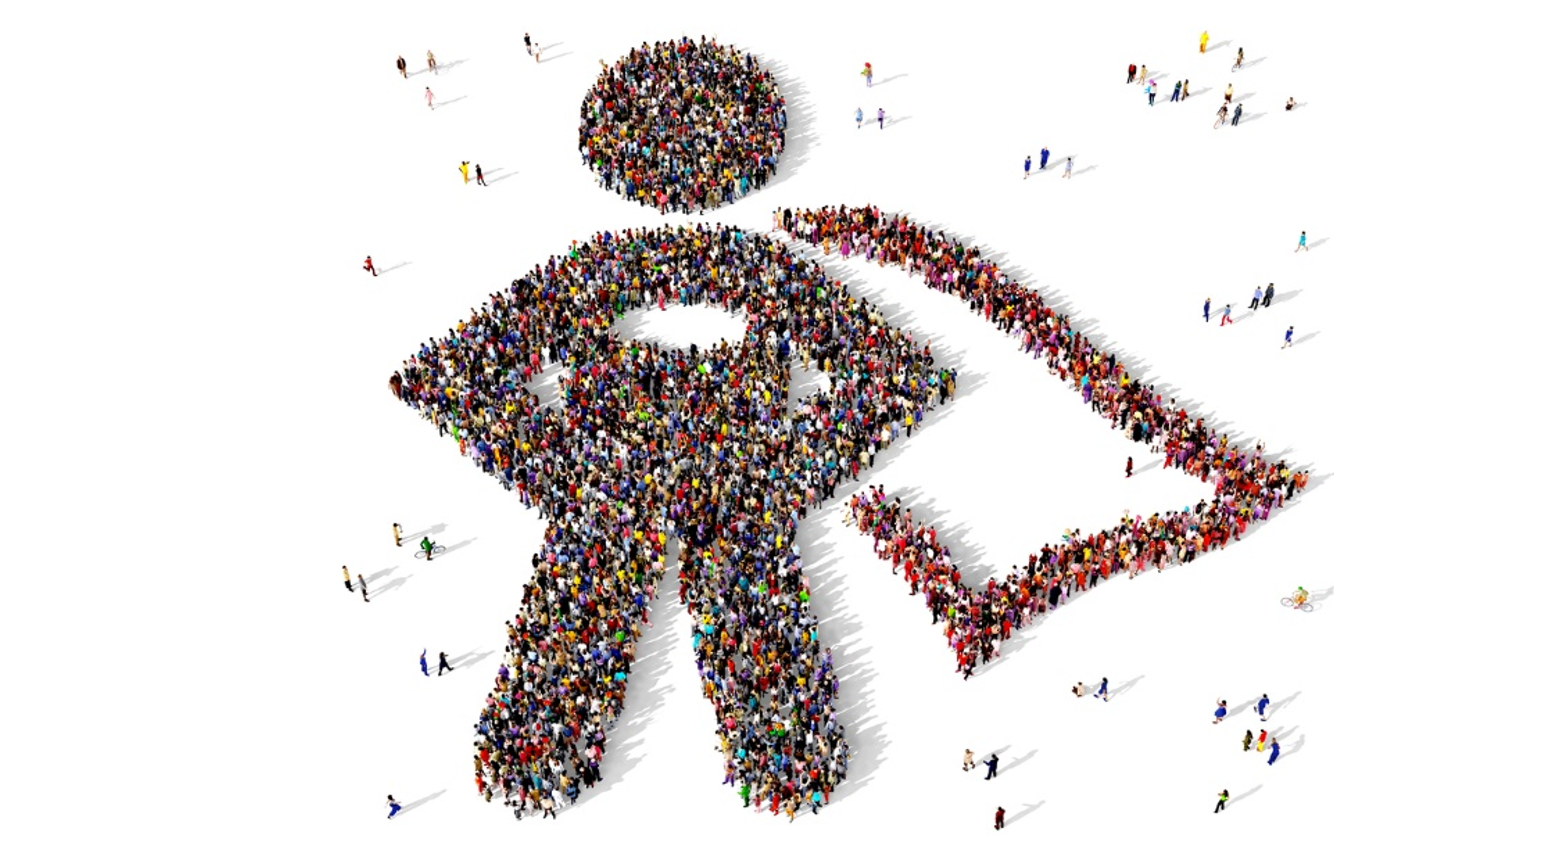 Crowd of people in the shape of a superhero.